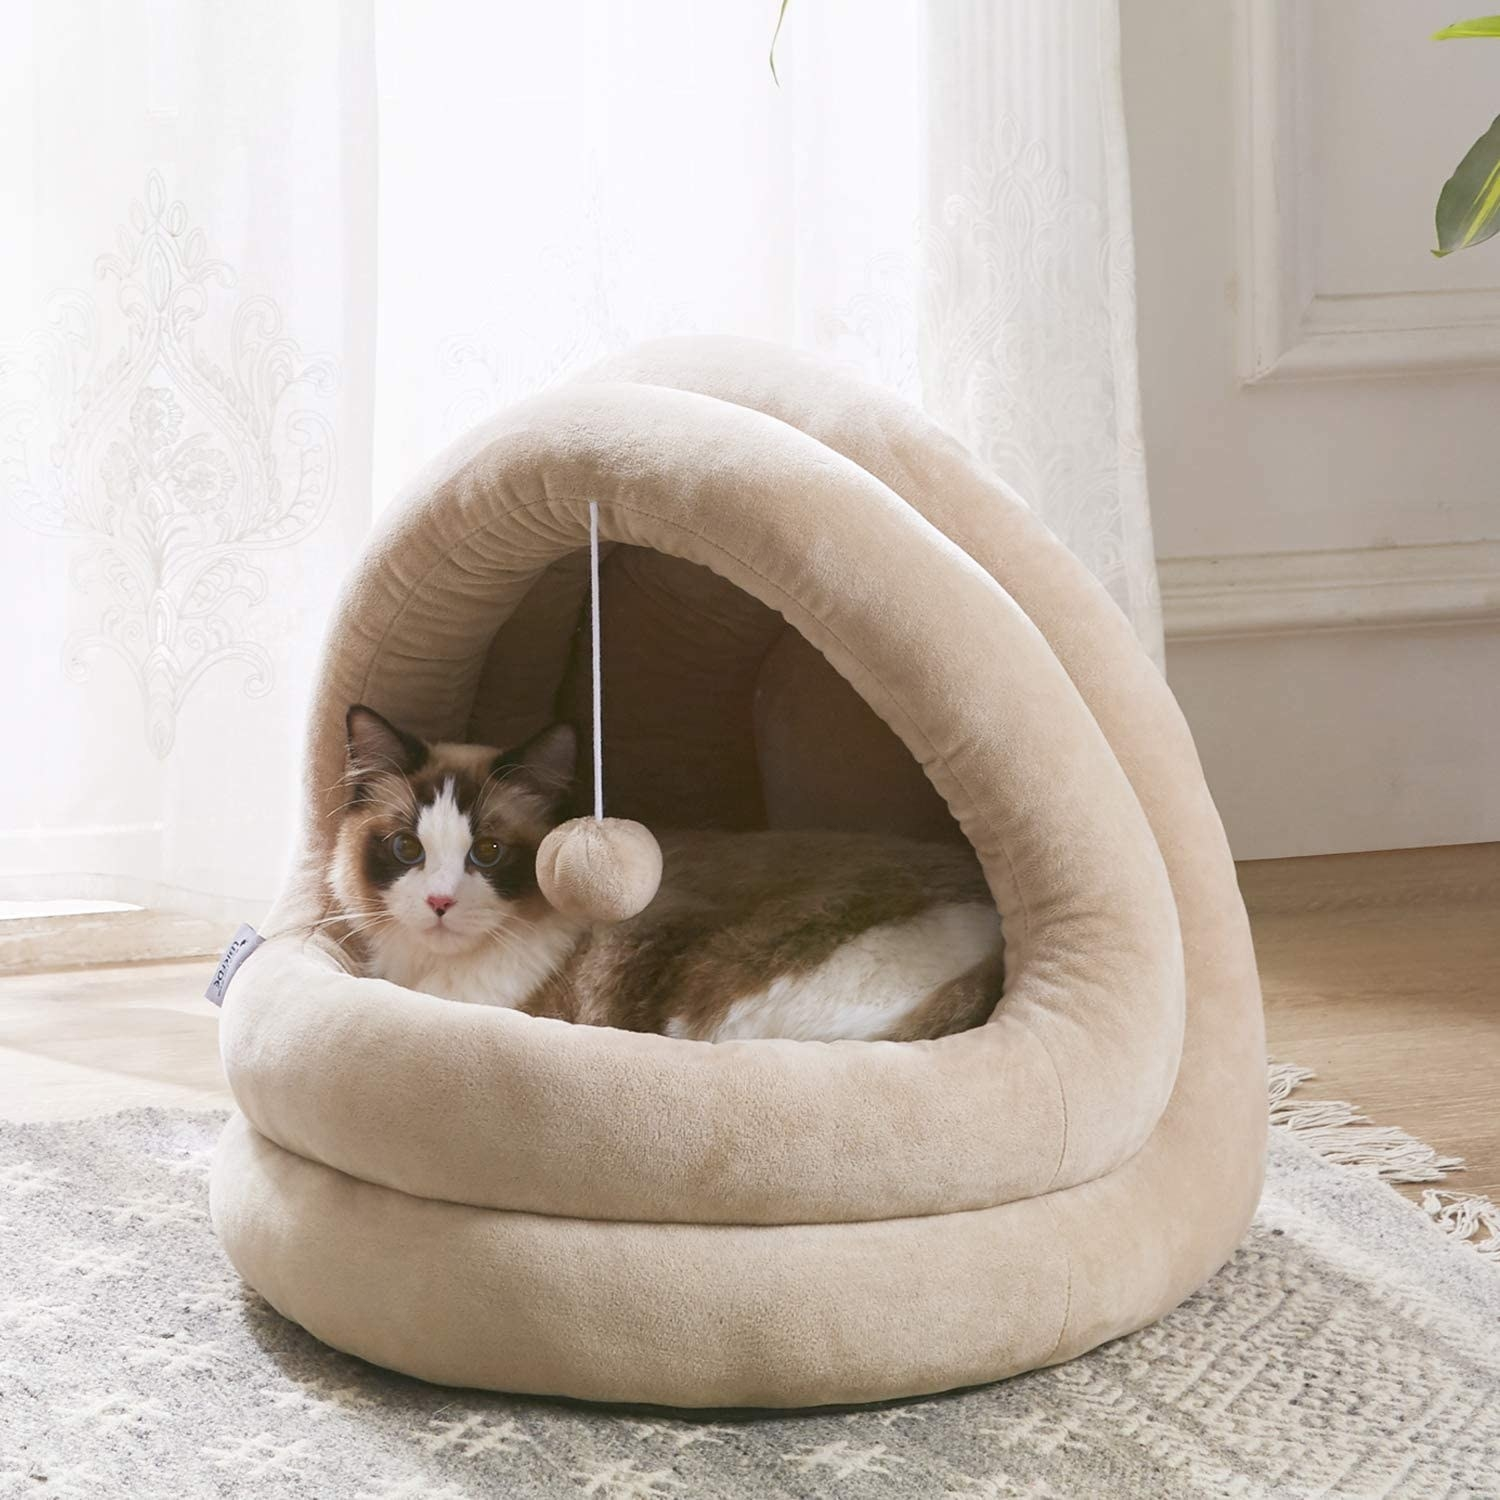 calico cat sitting inside of a beige cat cave/bed with a toy pom pom handing from the center of the cave